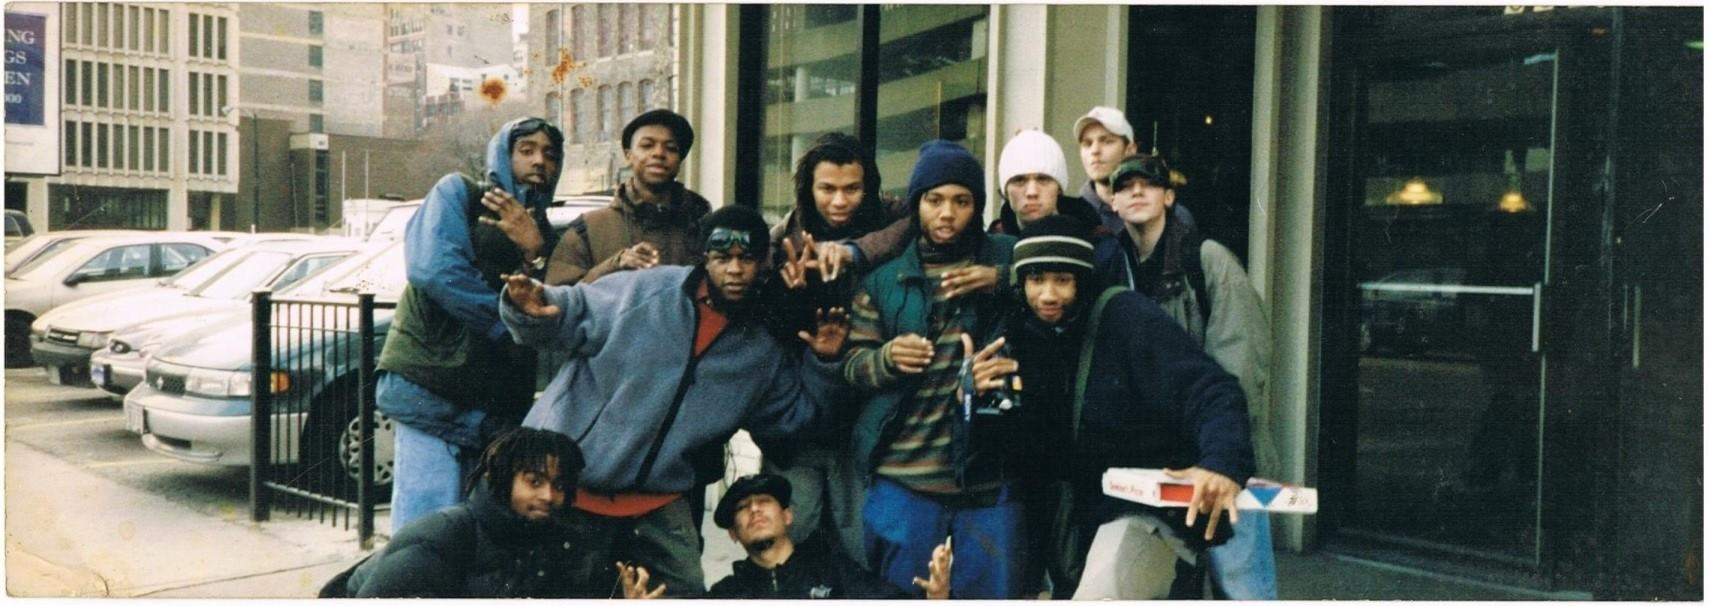 The South Side hip-hop collective Nacrobats hosted parties for teenagers and young adults in the 1990s.